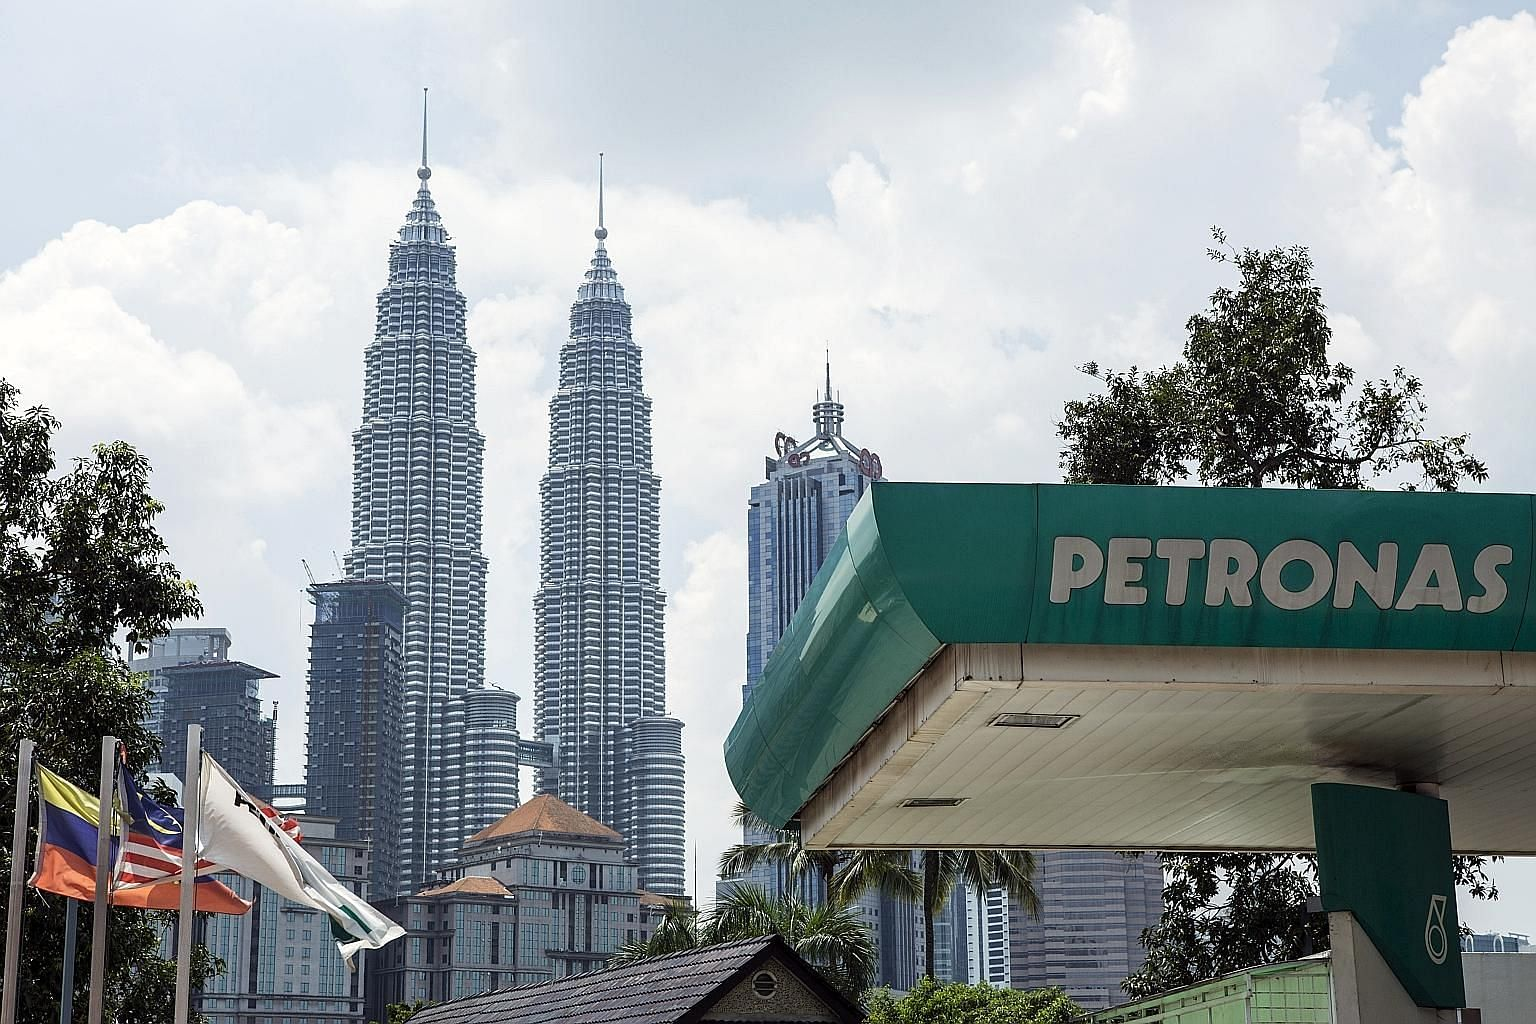 Scottish oil and gas training school Aberdeen Drilling set up shop in Malaysia, where a fifth of GDP comes from this sector, just a stone's throw from the iconic Twin Towers, which houses a key client and one of Asia's biggest players, Petronas, the